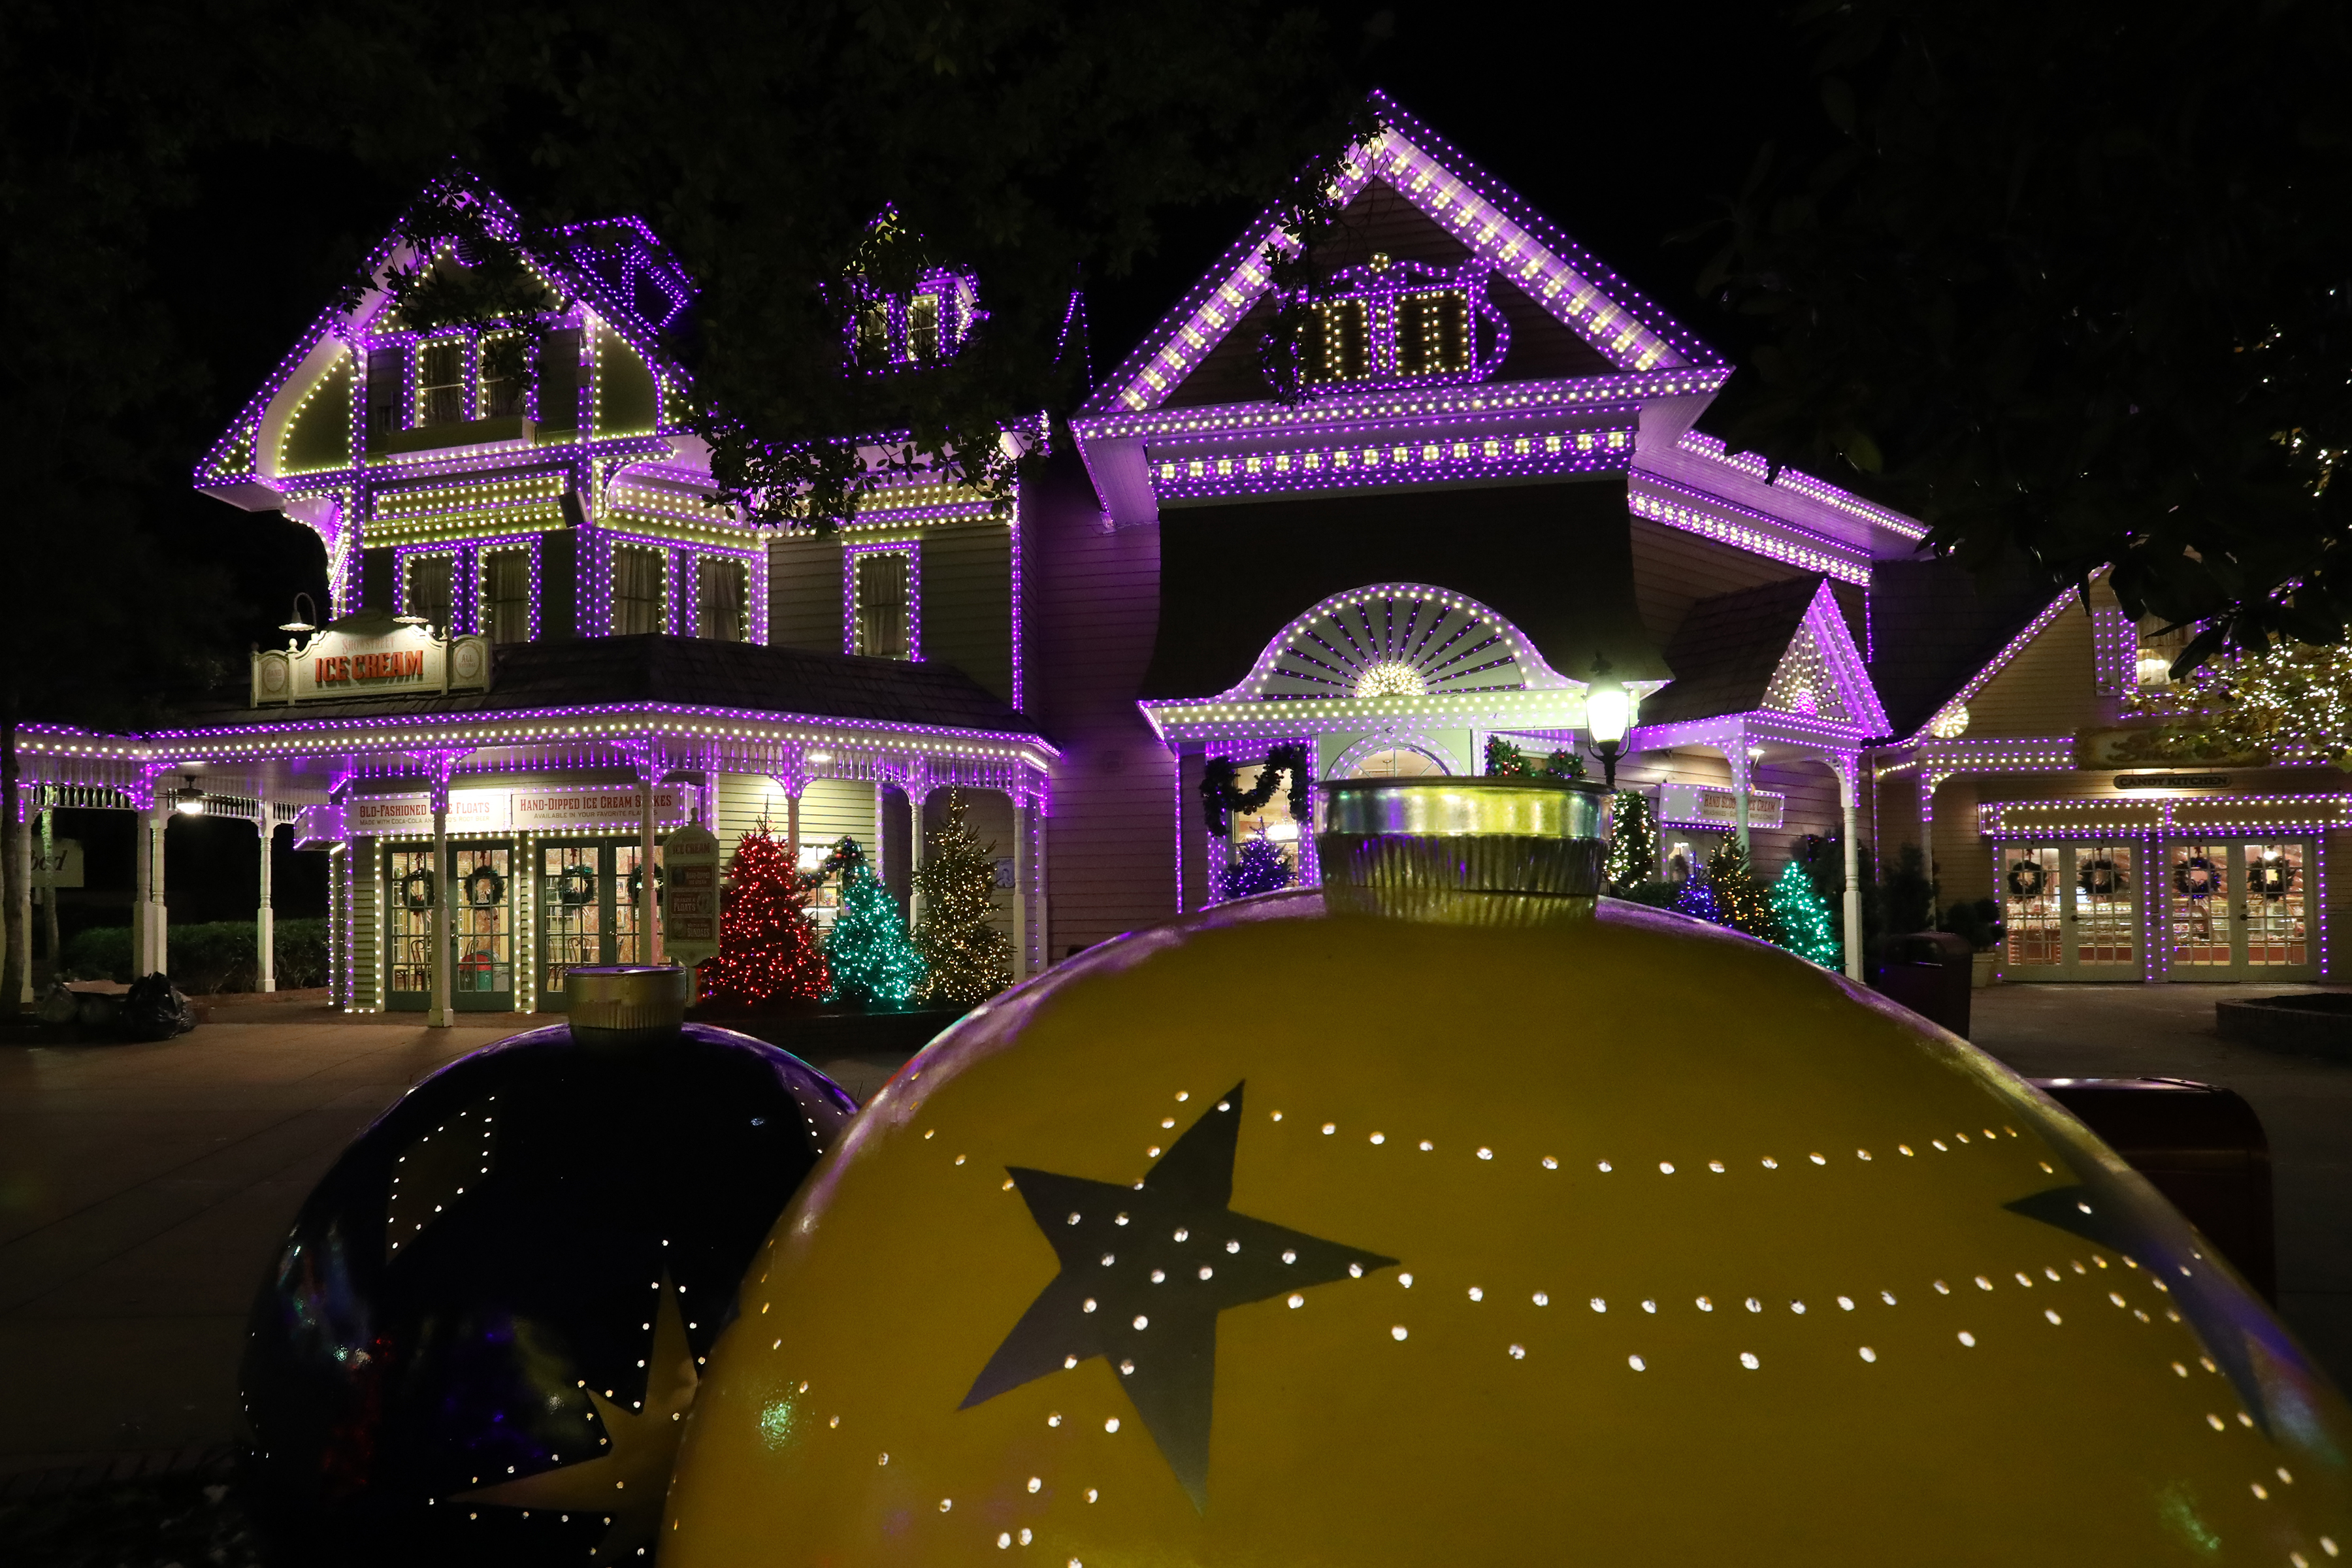 Dollywood Christmas Lights 2021 More Details About Dollywood S Smoky Mountain Christmas Dollywood Blog